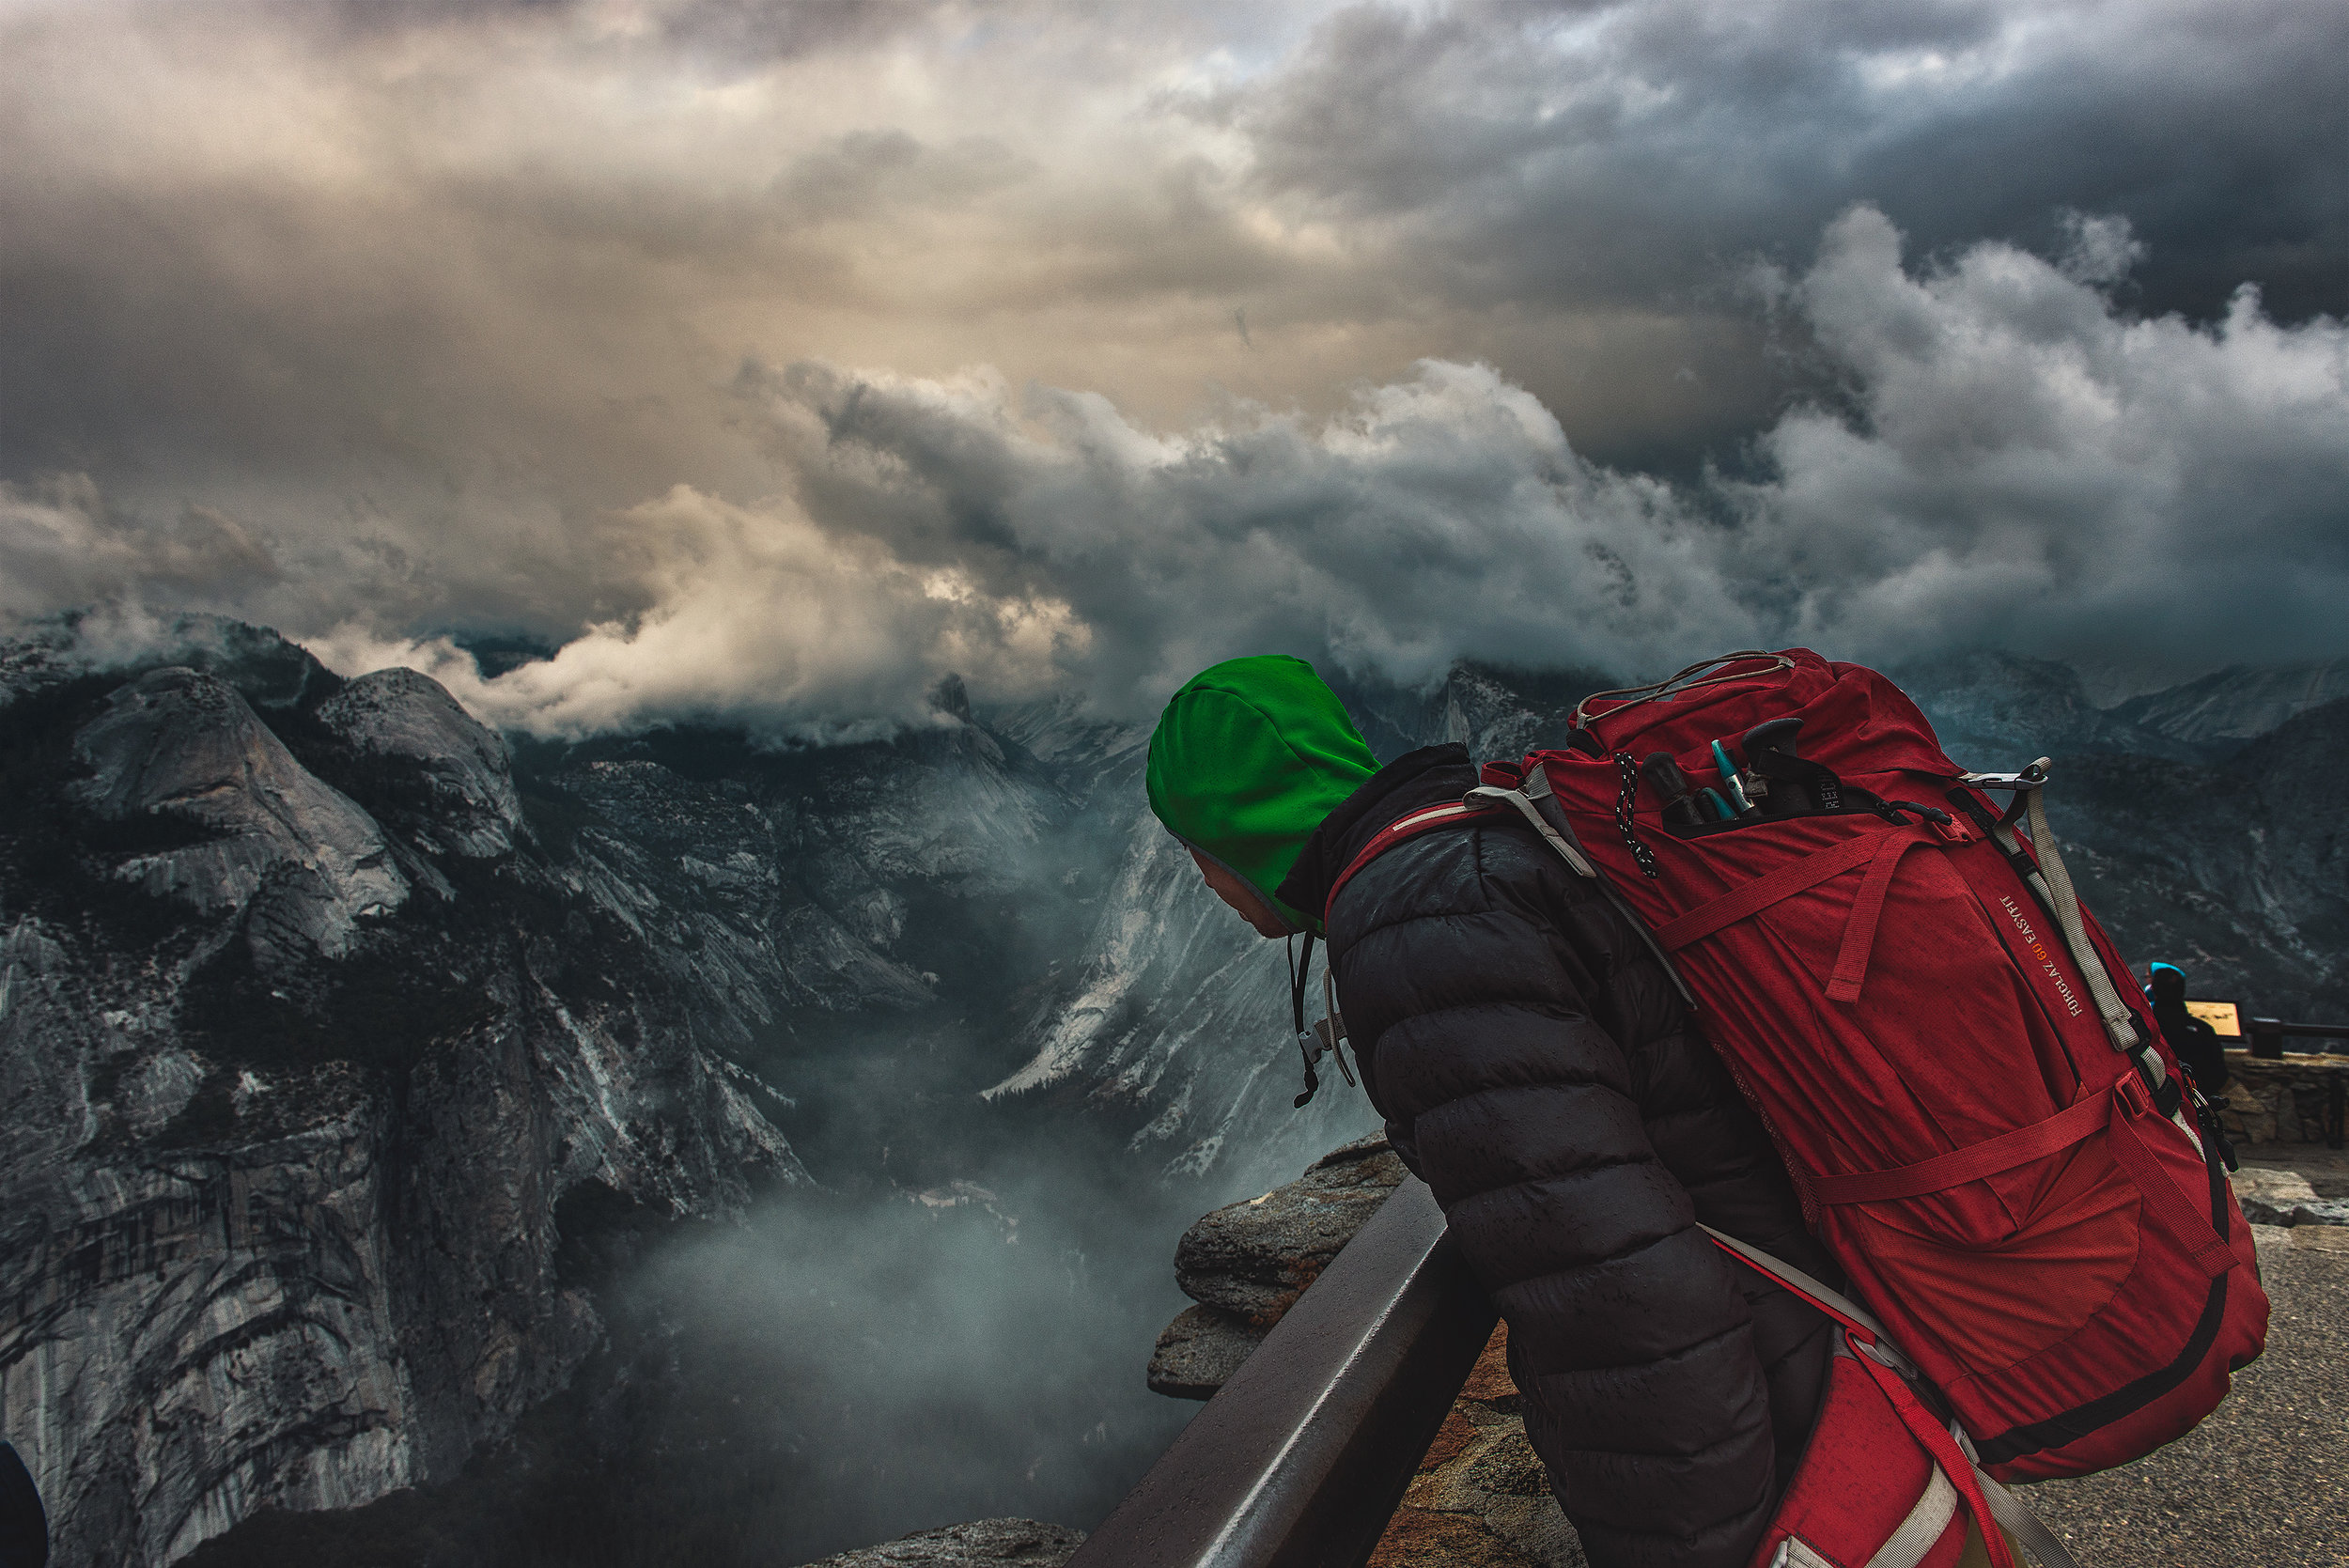 austin-trigg-wing-suit-base-jump-fly-yosemite-lifestyle-california-adventure-thrill-seeking-clouds-weather-valley.jpg